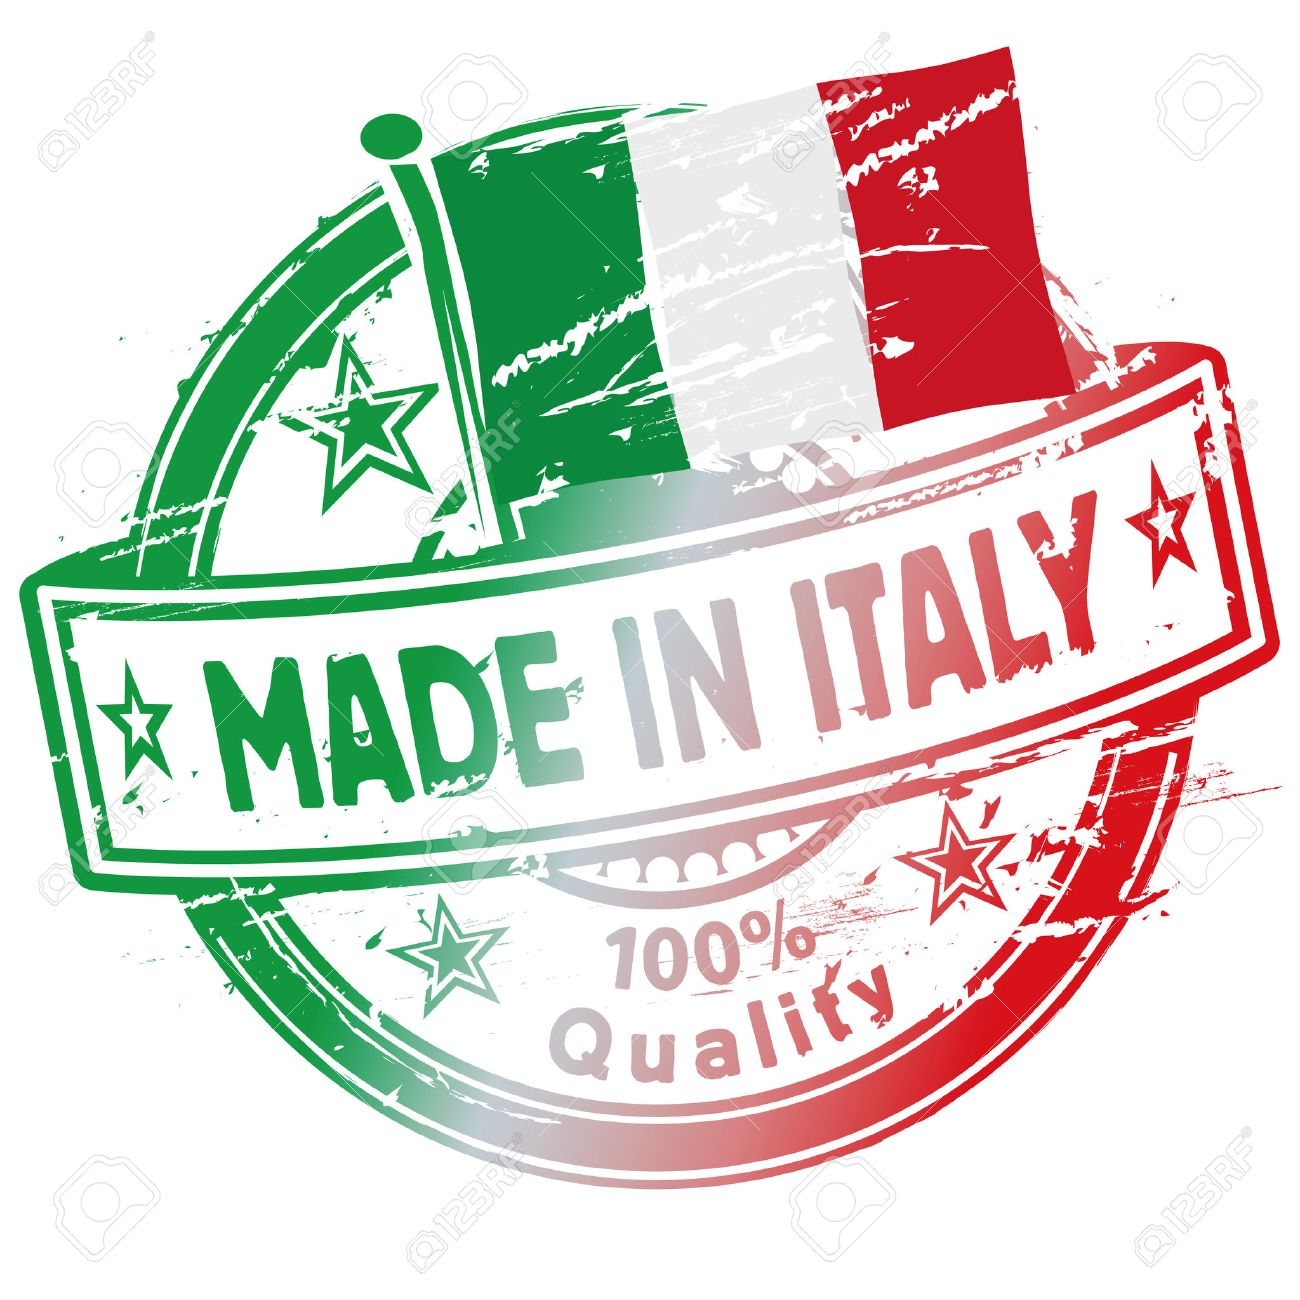 Rubber stamp made in Italy - 31915837